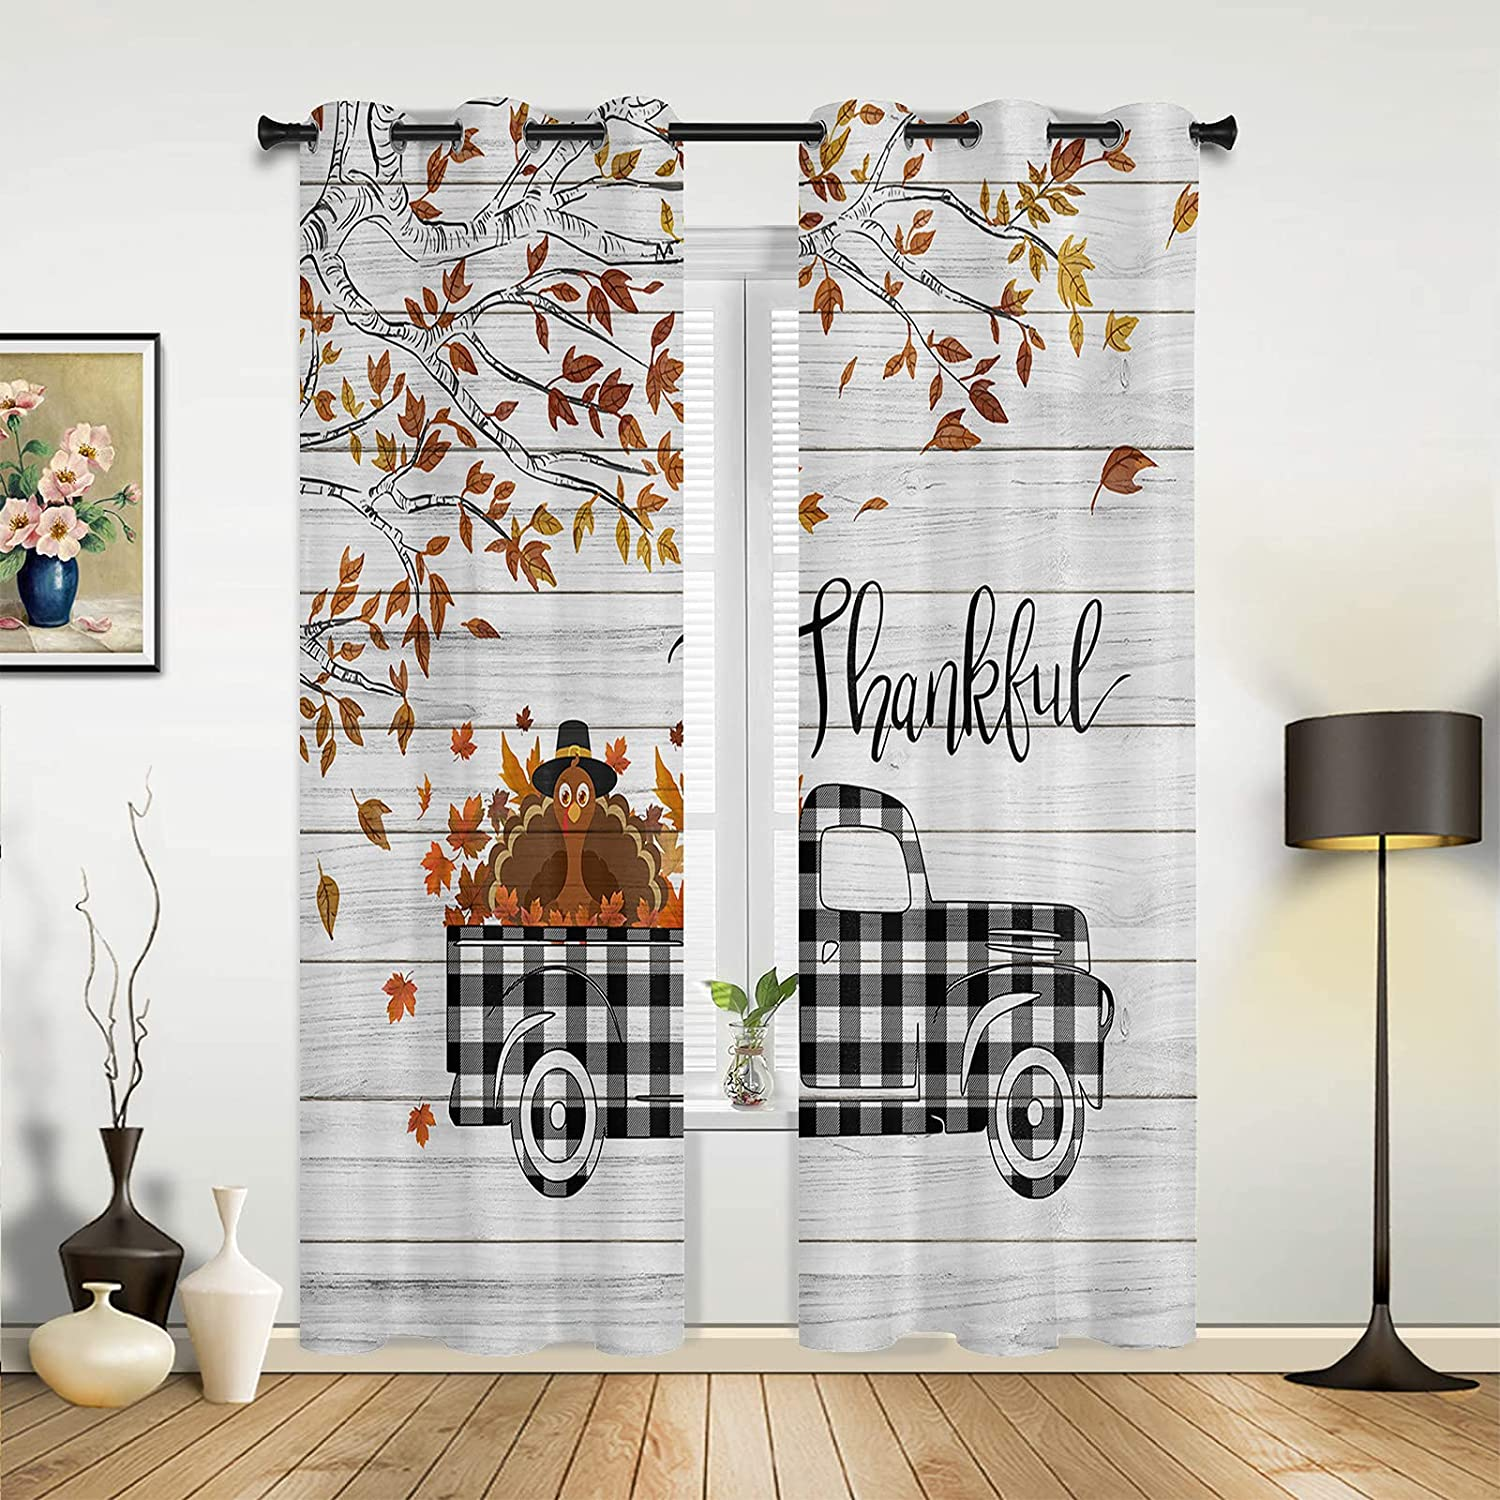 Window Sheer Curtains for Bedroom Sales Manufacturer regenerated product Happy Room Living Thanksgiving